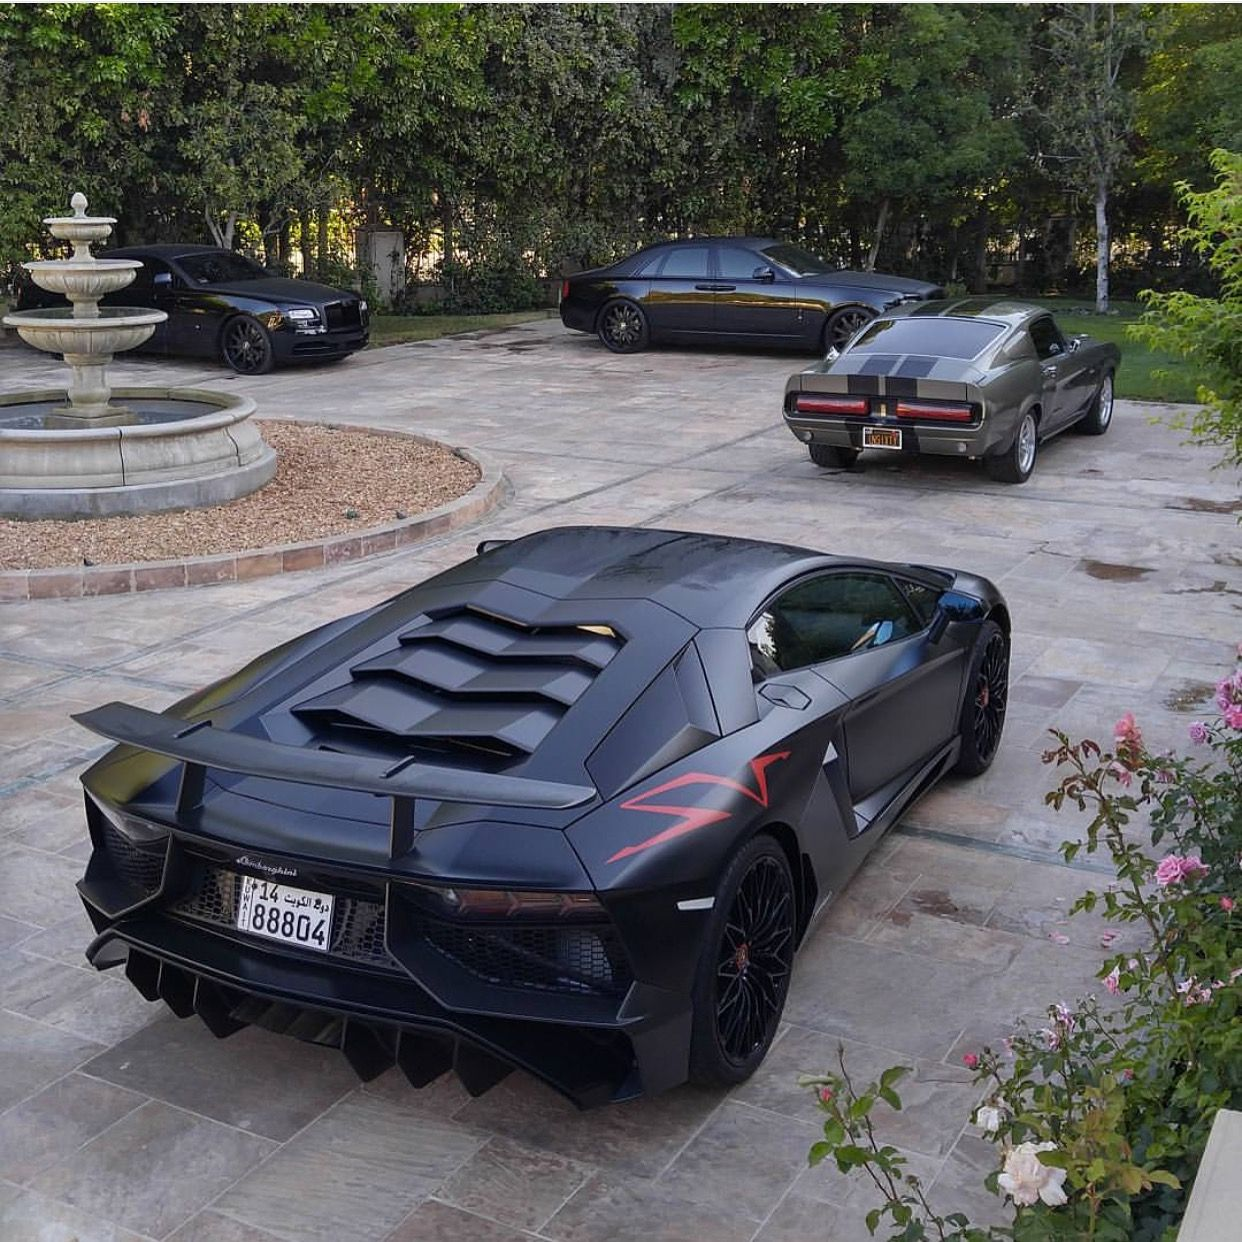 """2 Rolls Royce Ghosts painted in Gloss Black, 1969 Ford Mustang GT500 painted in Silver and a Lamborghini Aventador Super Veloce Coupe painted in Nero Nemesis w/ Red """"SV"""" stickers Photo taken by: @thedaekestride on Instagram (He is also the owner of the cars)"""